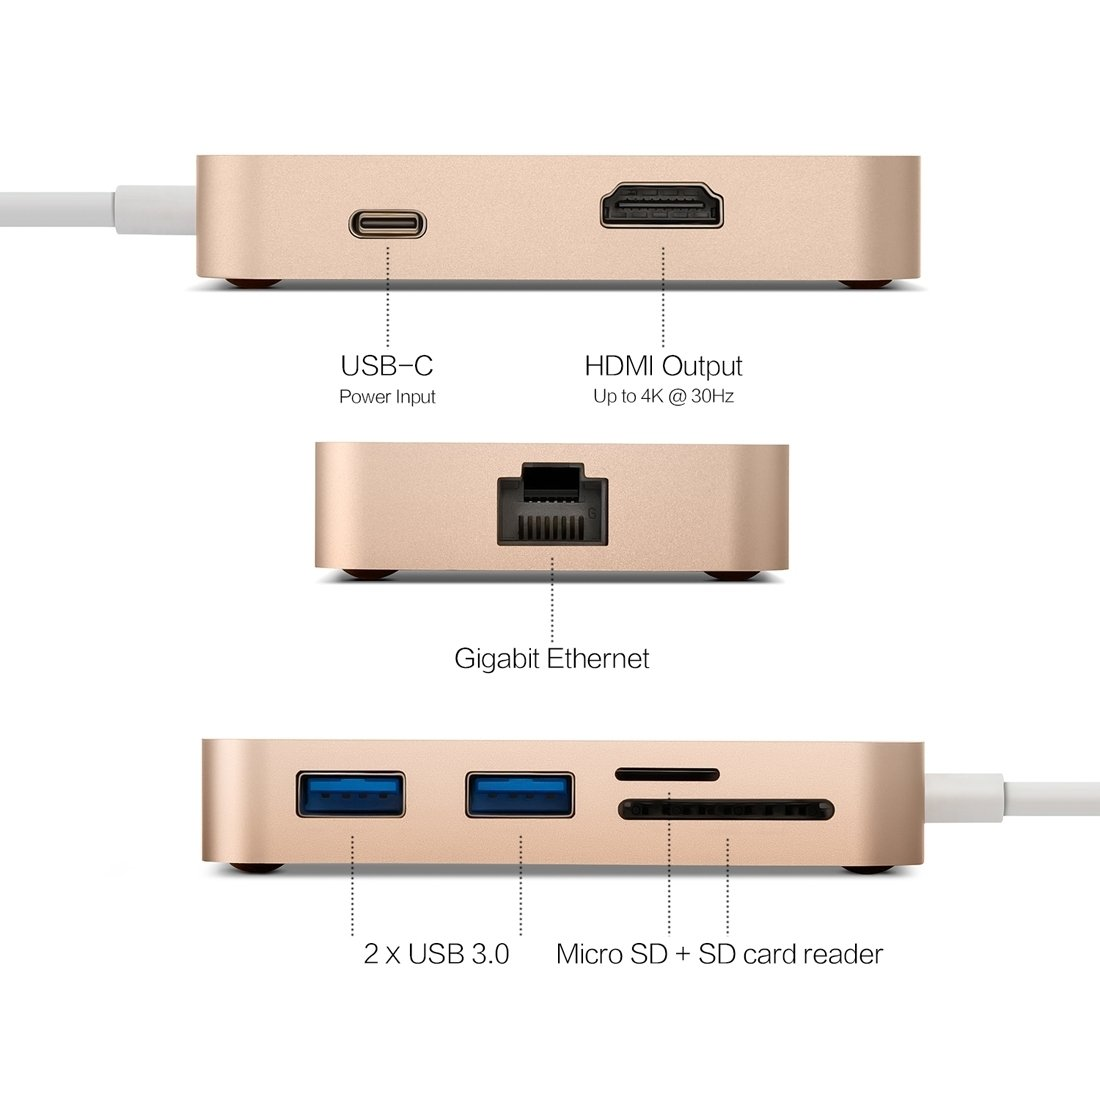 Data Cables MINIX NEO C 7 in 1 USB-C / Type-C to 2 x USB 3.0 + HDMI + Gigabit Ethernet Port + SD(HC) + Micro SD Card Reader Adapter ( Color : Gold ) by HN Cables (Image #4)